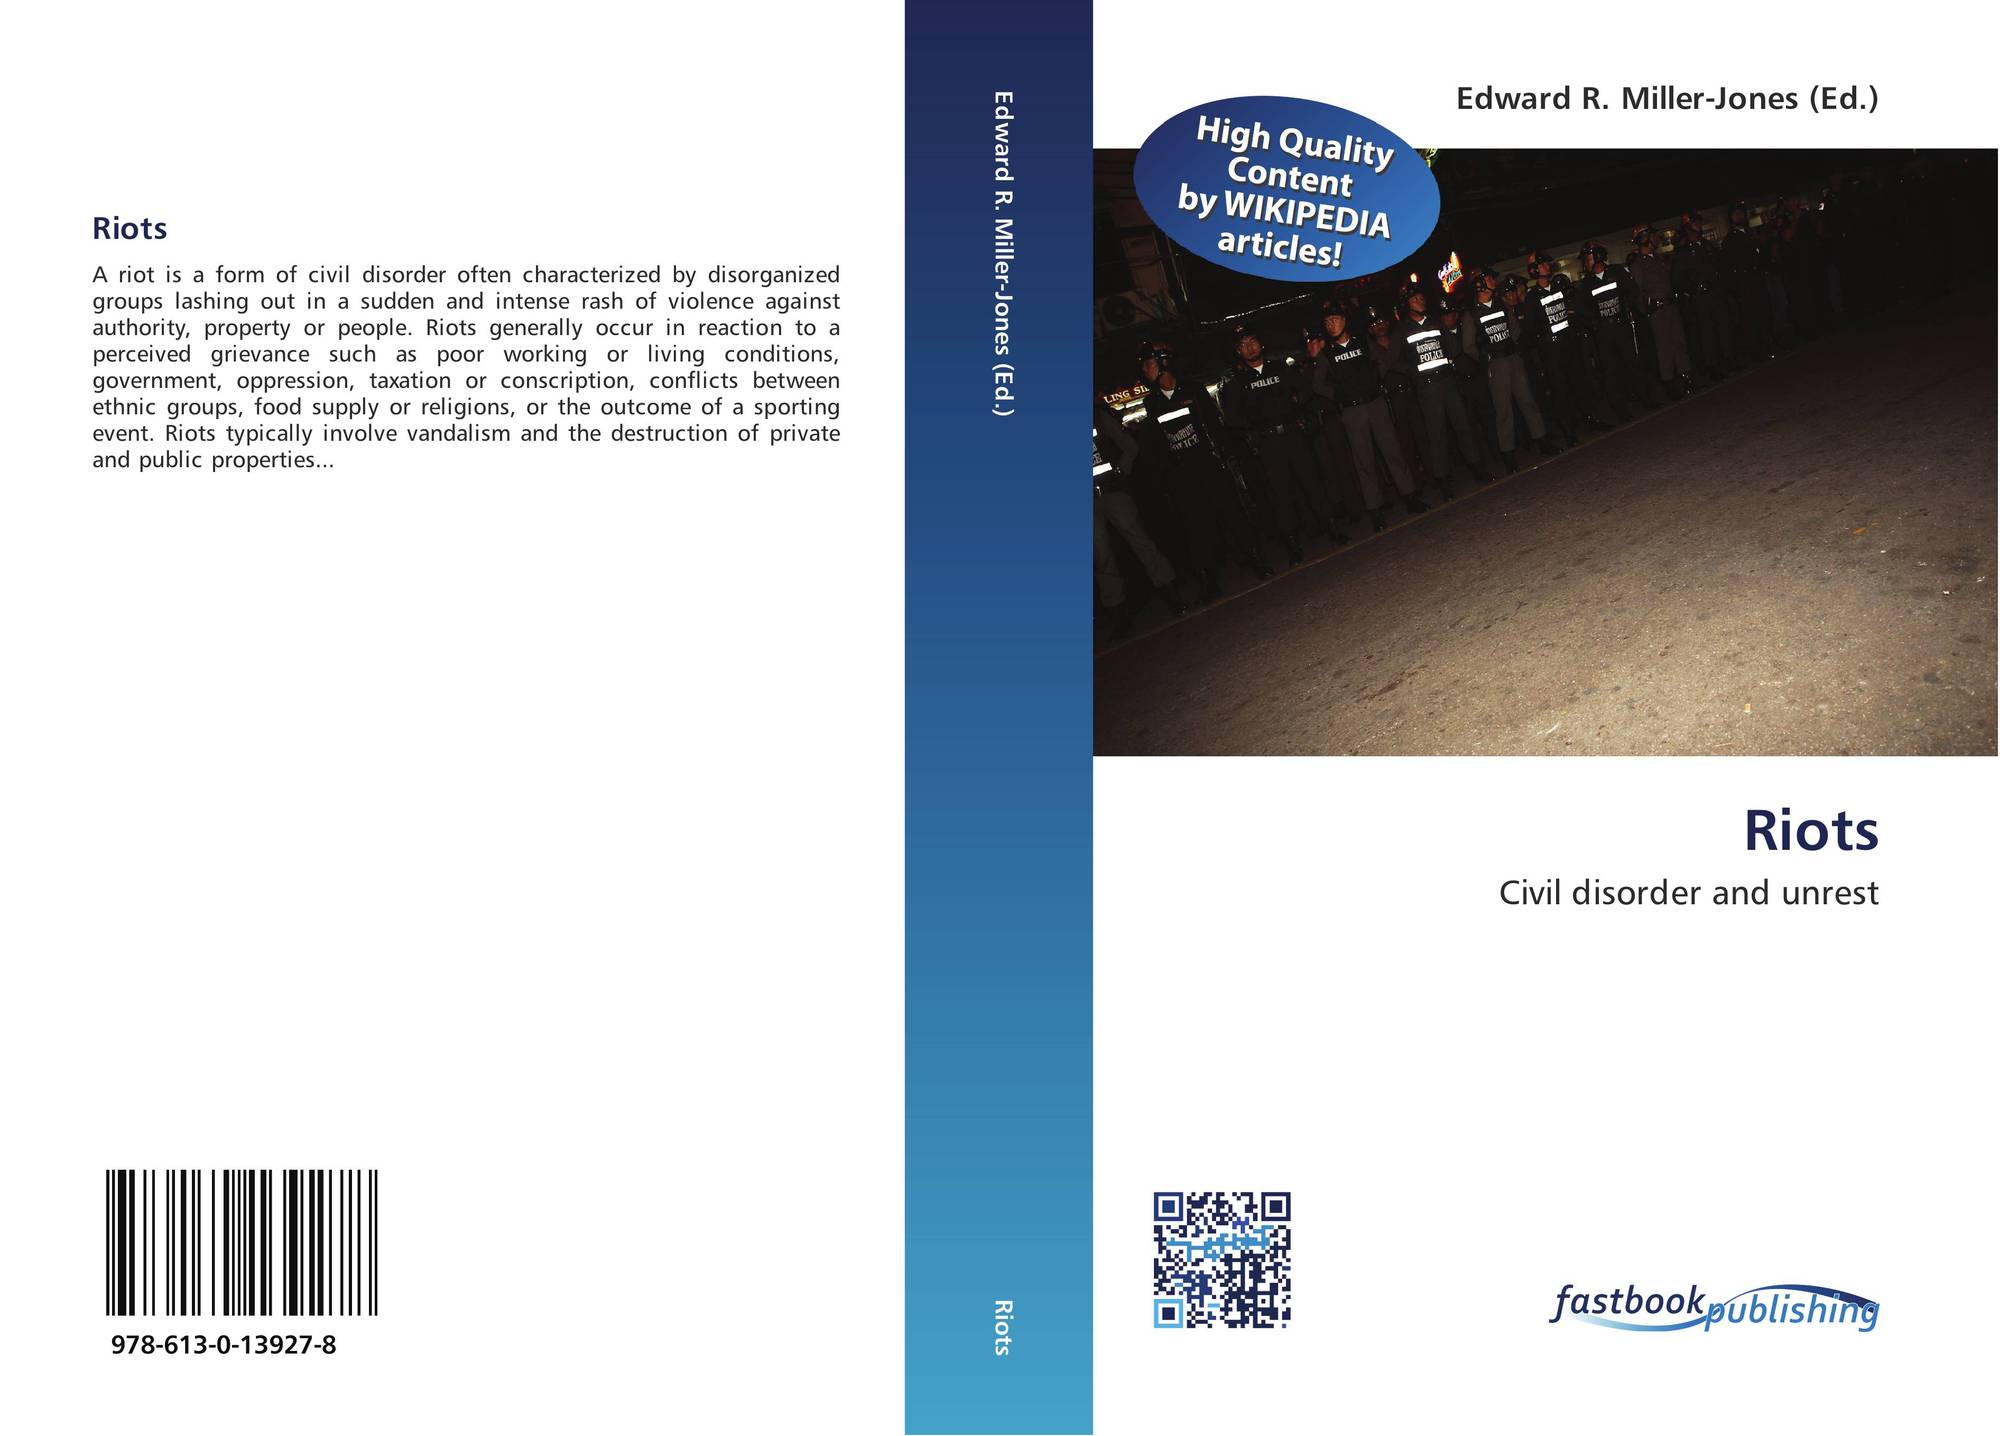 an analysis of the topi of the civil disobedience Complete summary of henry david thoreau's civil disobedience enotes plot summaries cover all the significant action of civil disobedience.